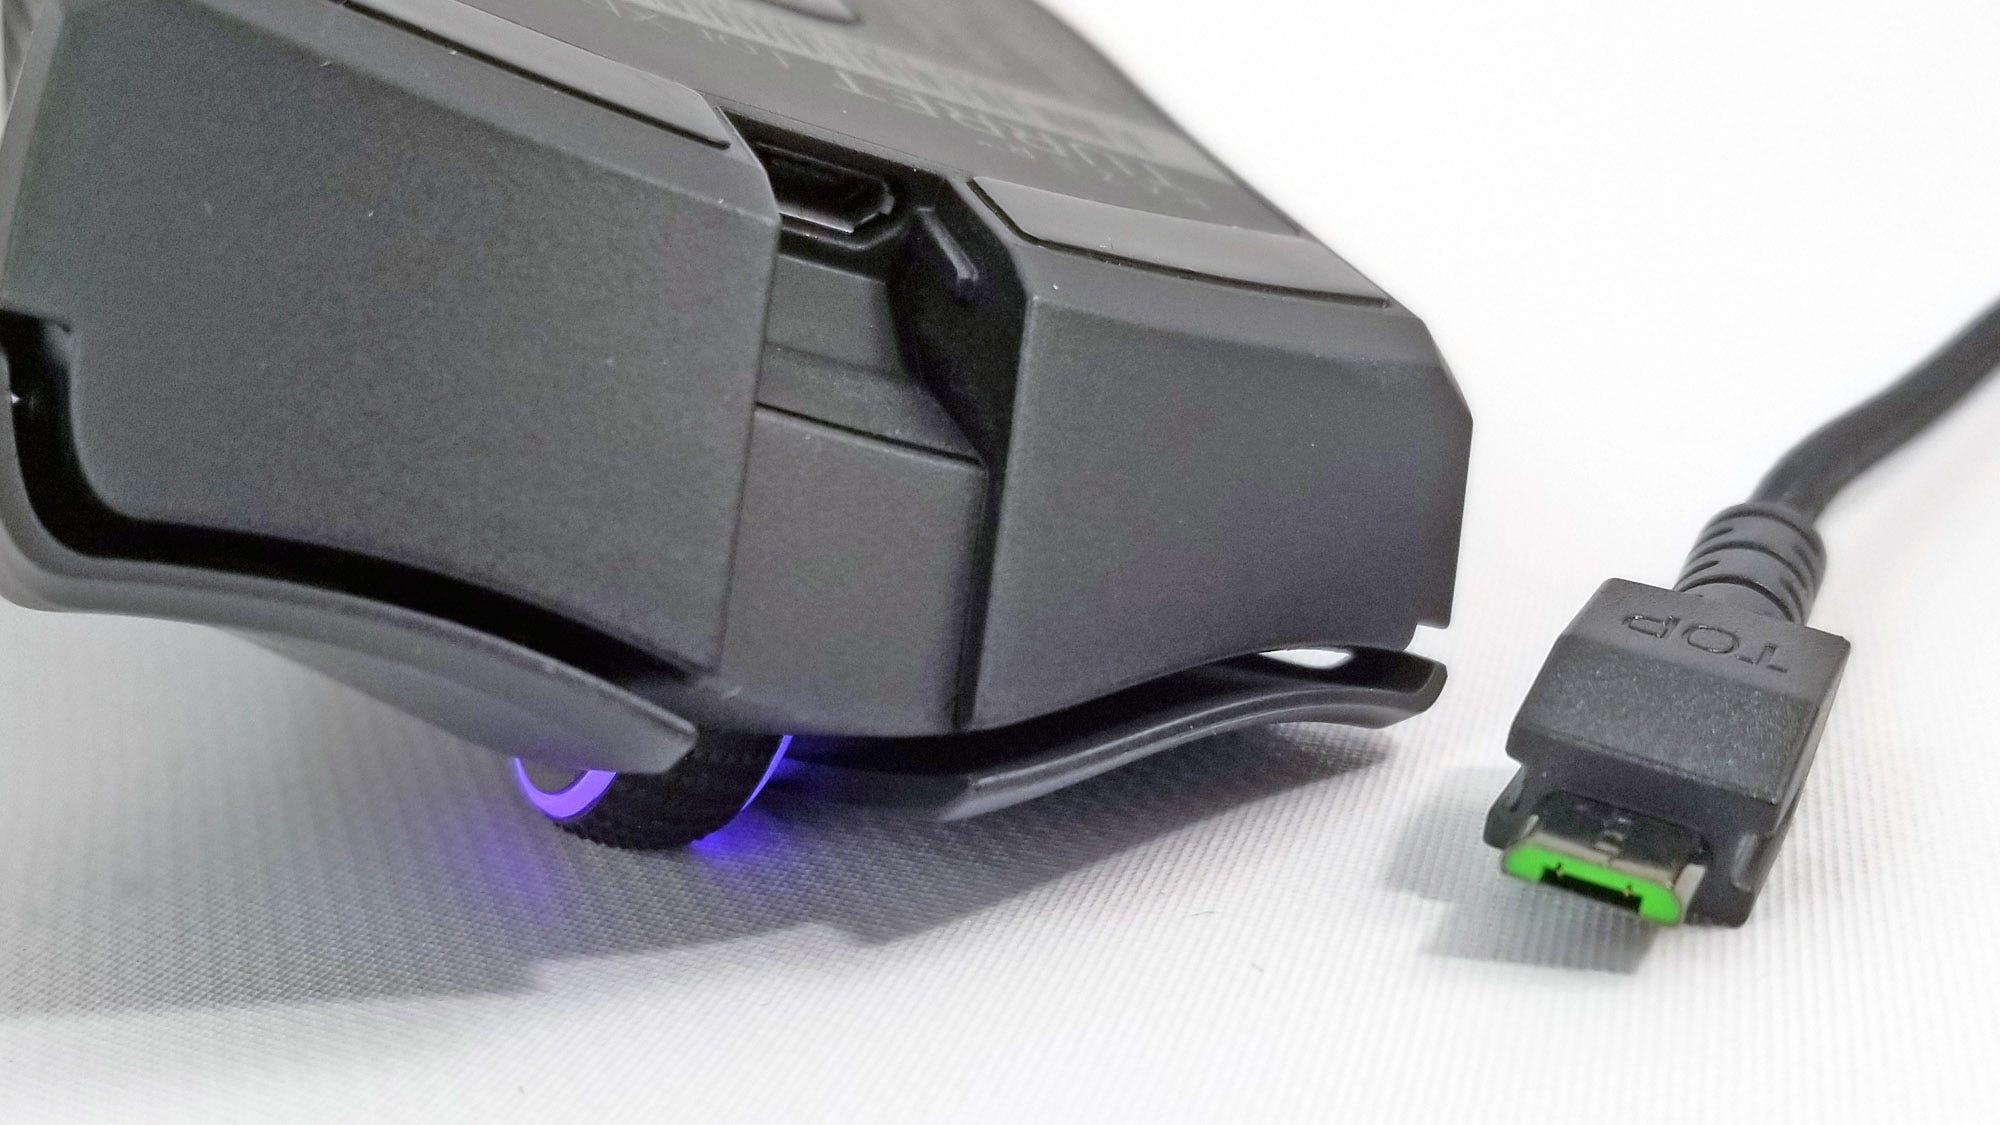 The mouse in the Razer Turret uses MicroUSB, probably so it could re-use the design of the Mamba.